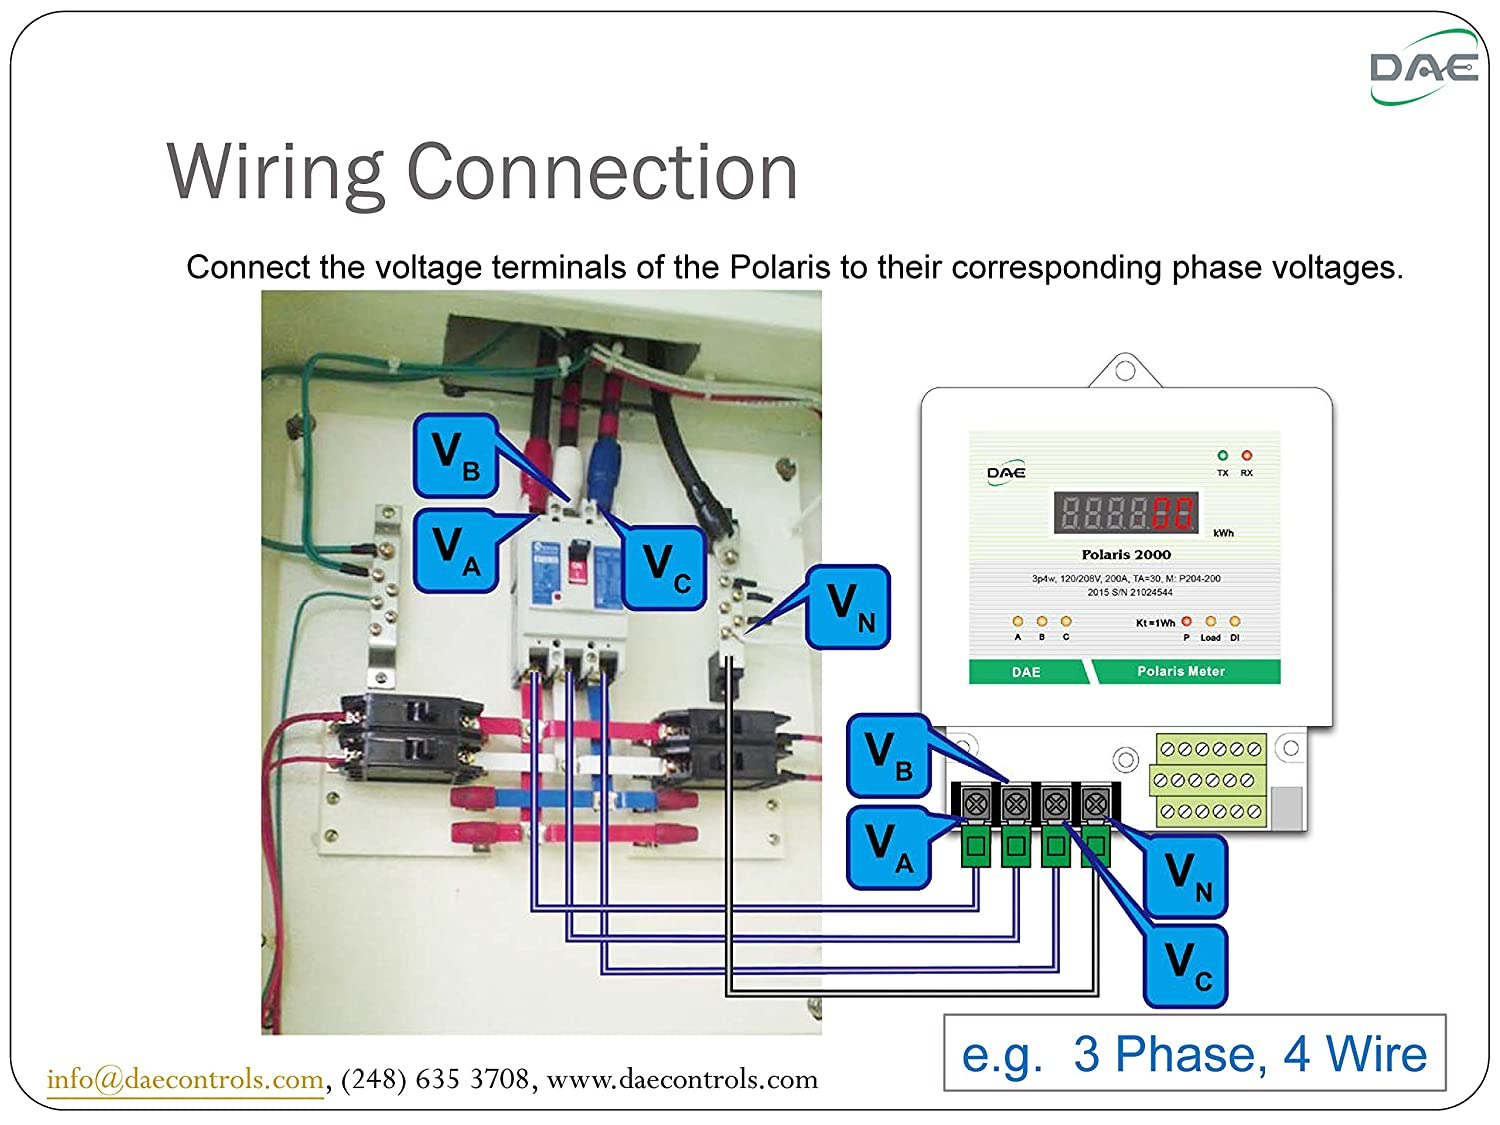 Dae P204 100 Kit Ul Kwh Smart Submeter 3 Phase 4 Wire 100a 120 Wiring 208v Split Core Cts